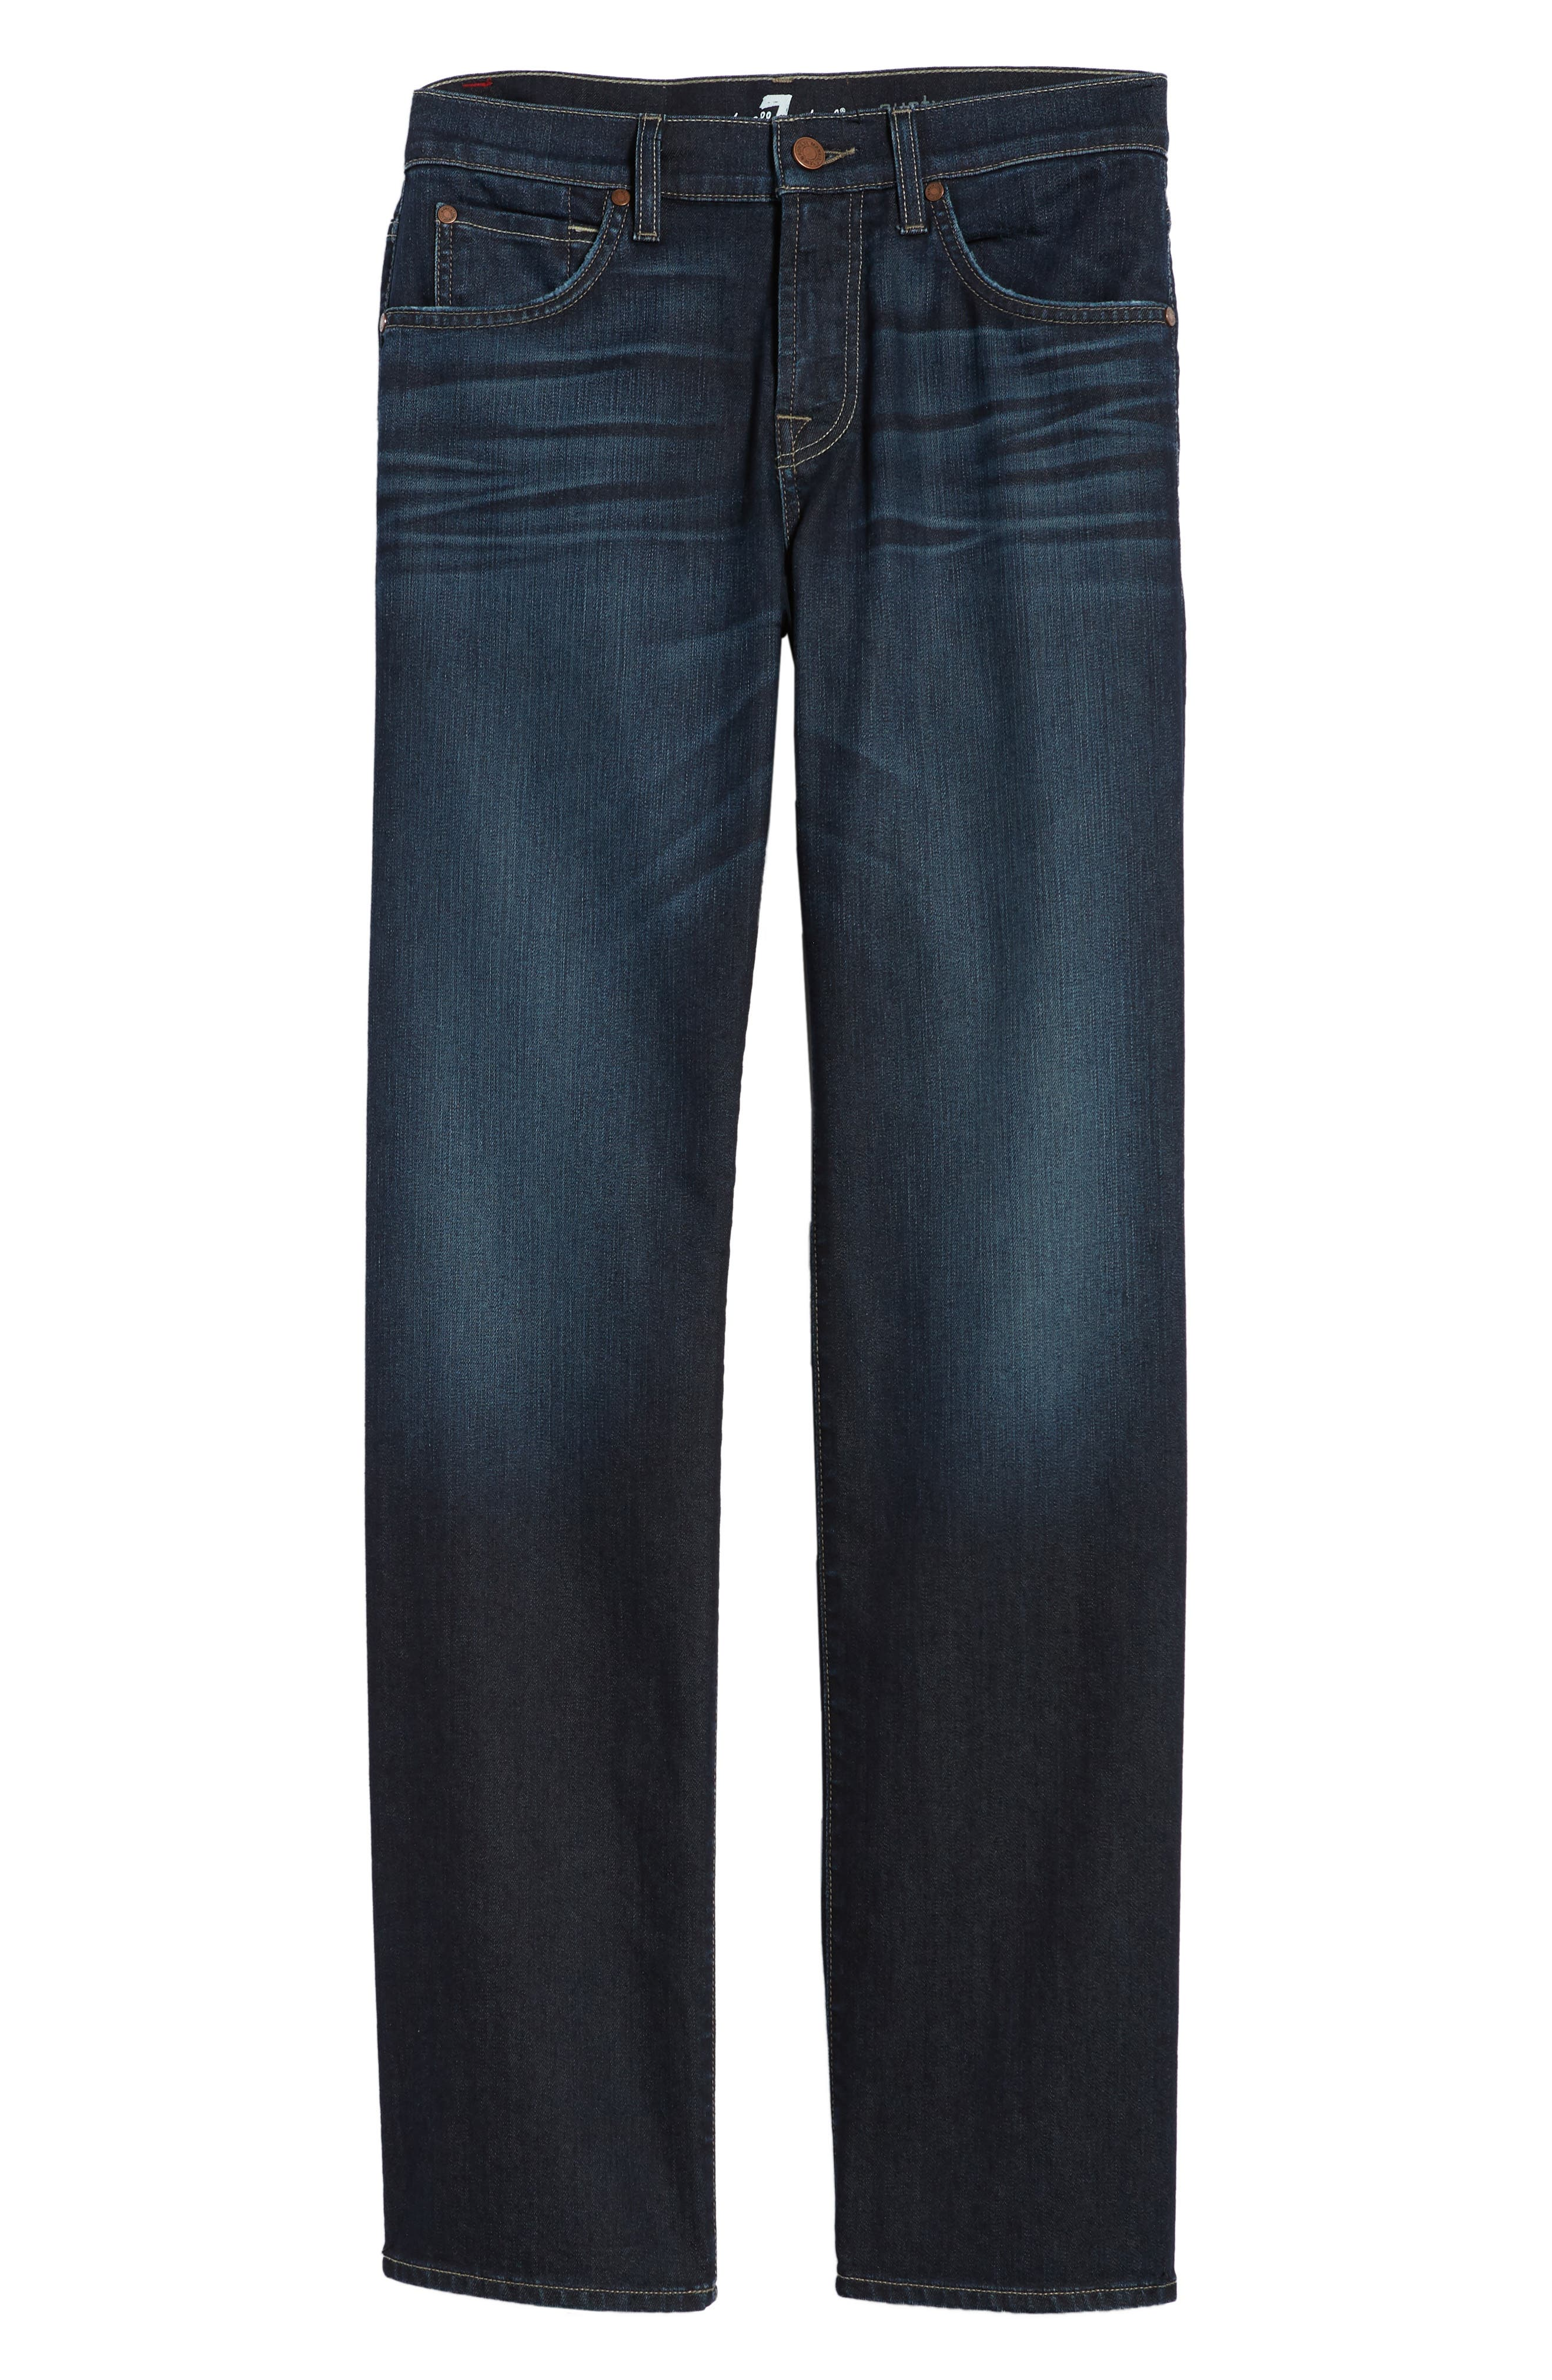 Airweft Austyn Relaxed Straight Leg Jeans,                             Alternate thumbnail 6, color,                             406